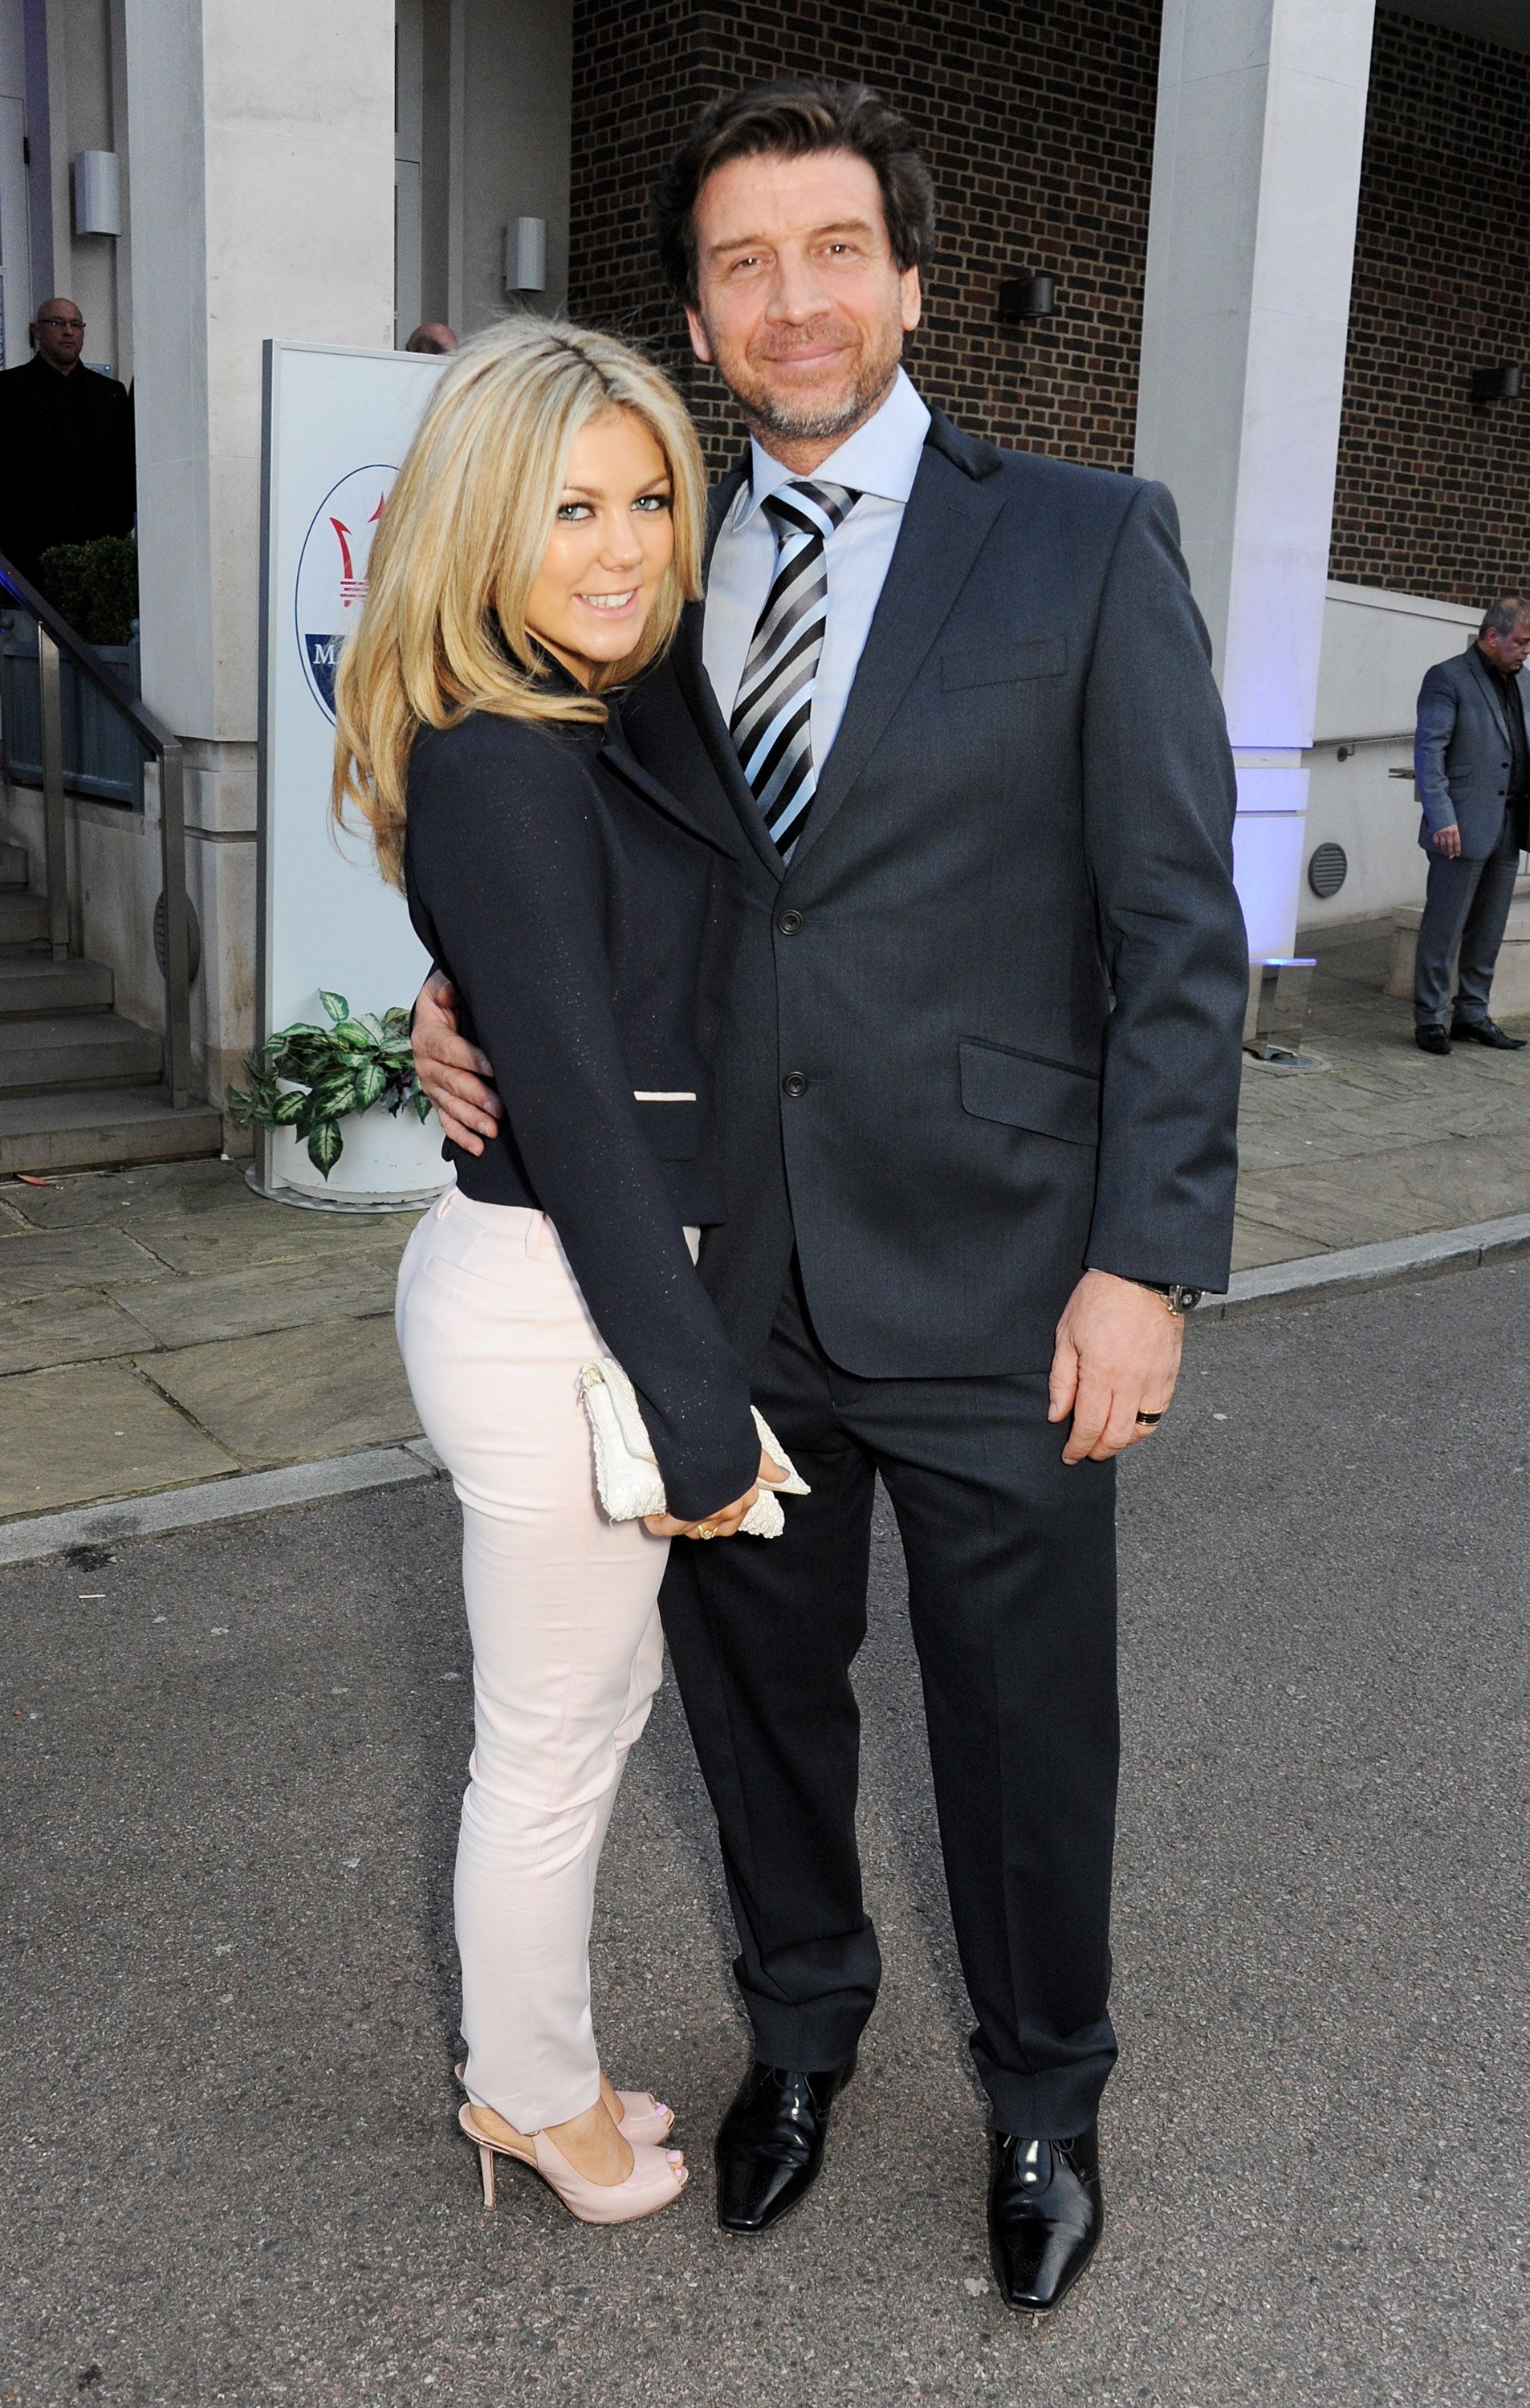 Nick Knowles Responds To Abuse Allegations Made By Wife Jessica